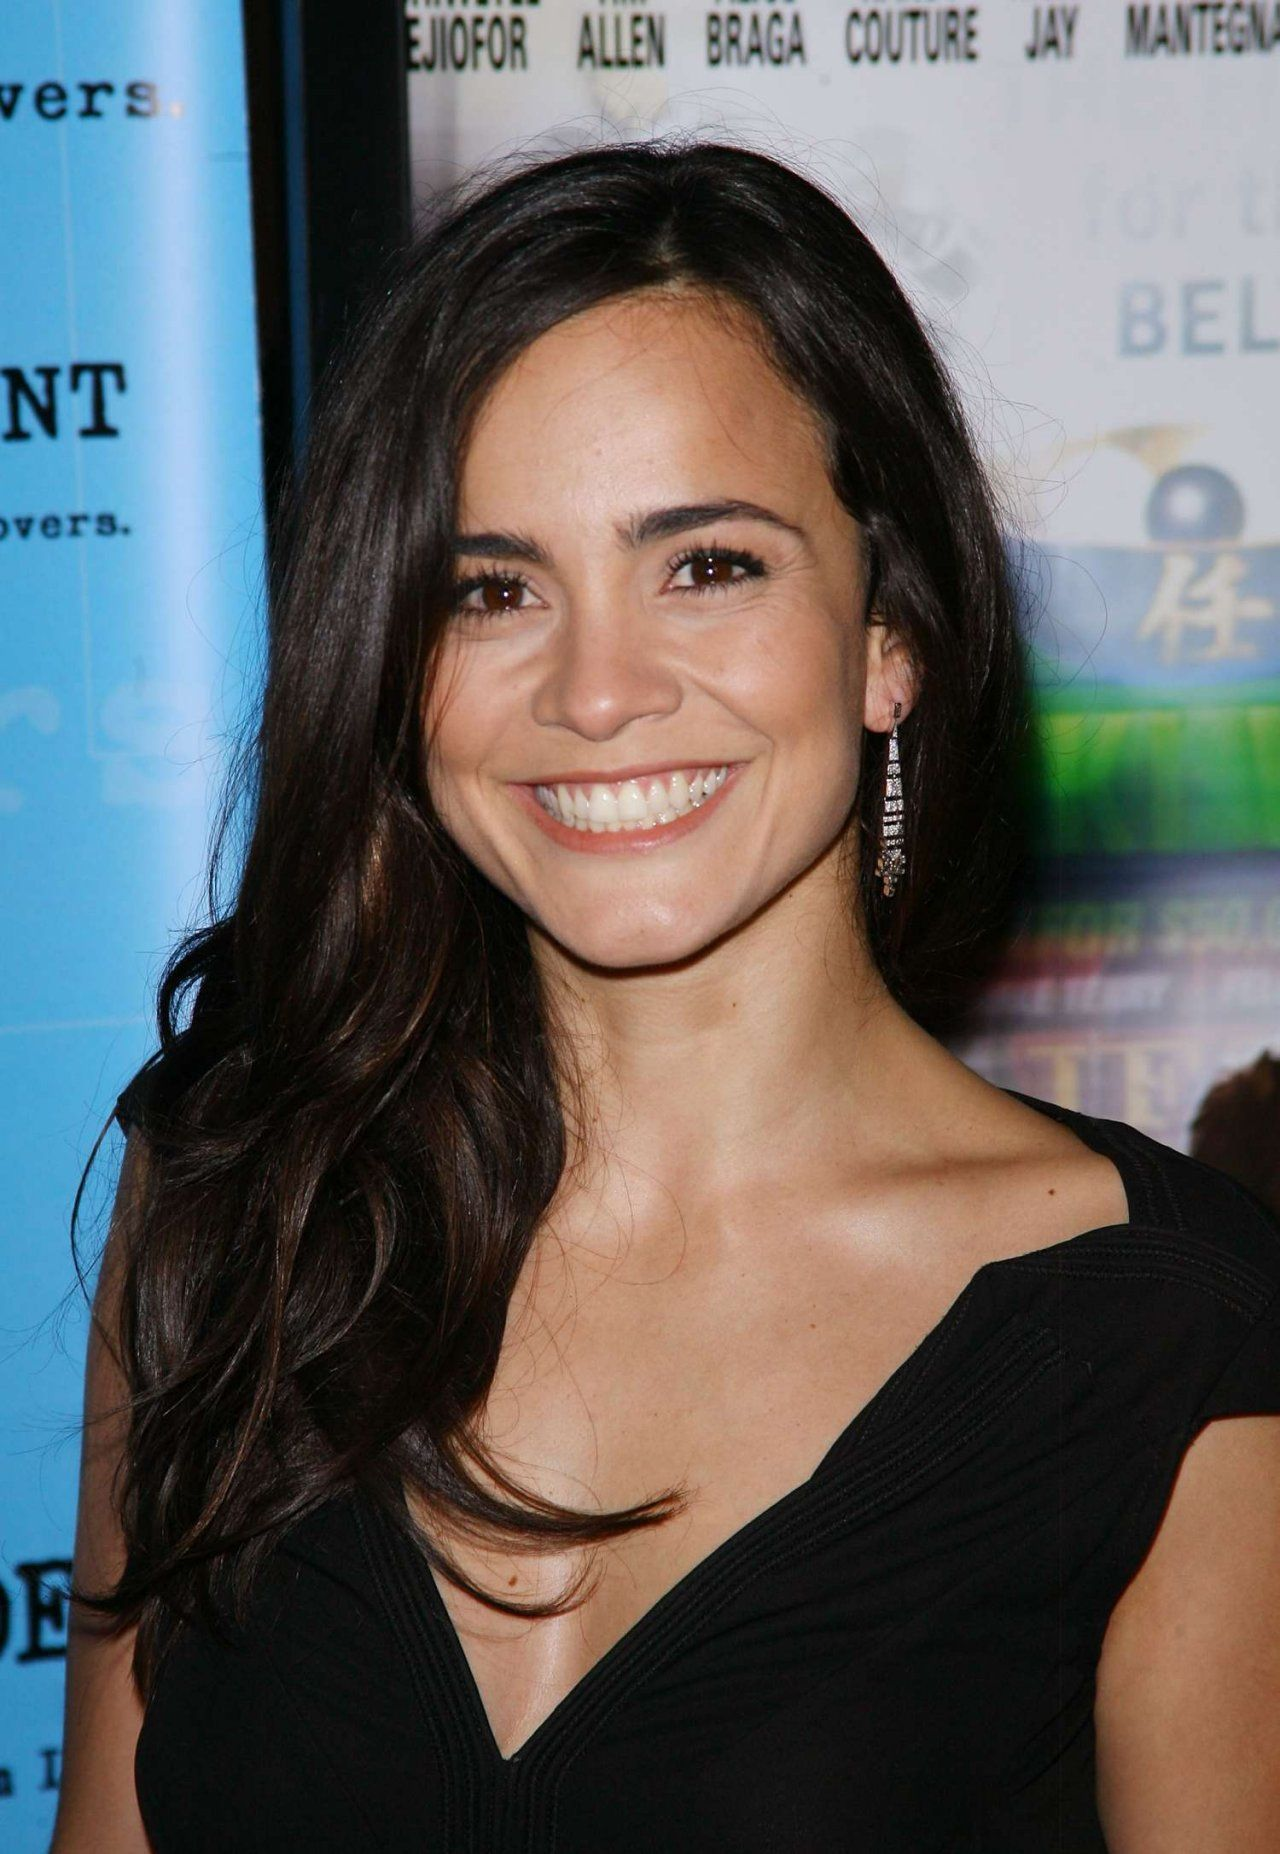 Young Alice Braga nudes (77 photo), Ass, Is a cute, Instagram, cleavage 2018